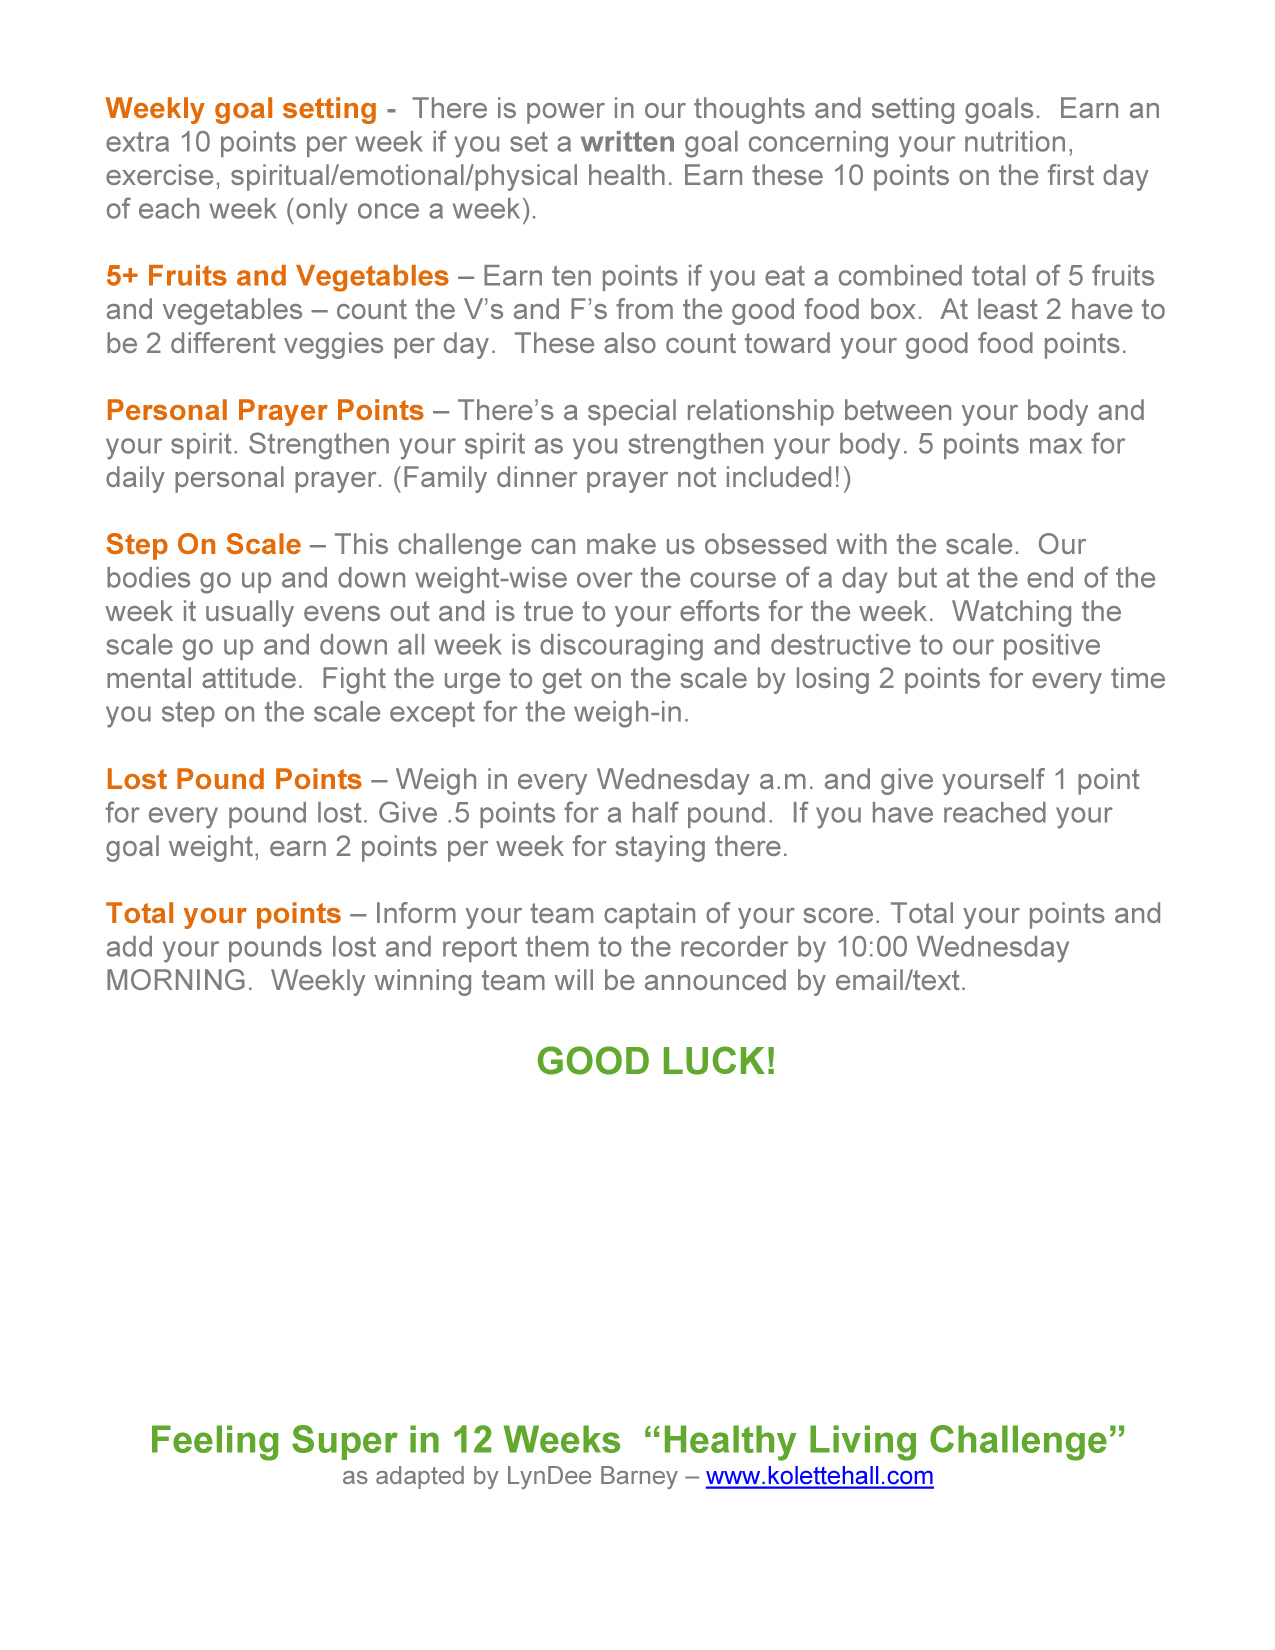 Healthy Living Challenge How It Works